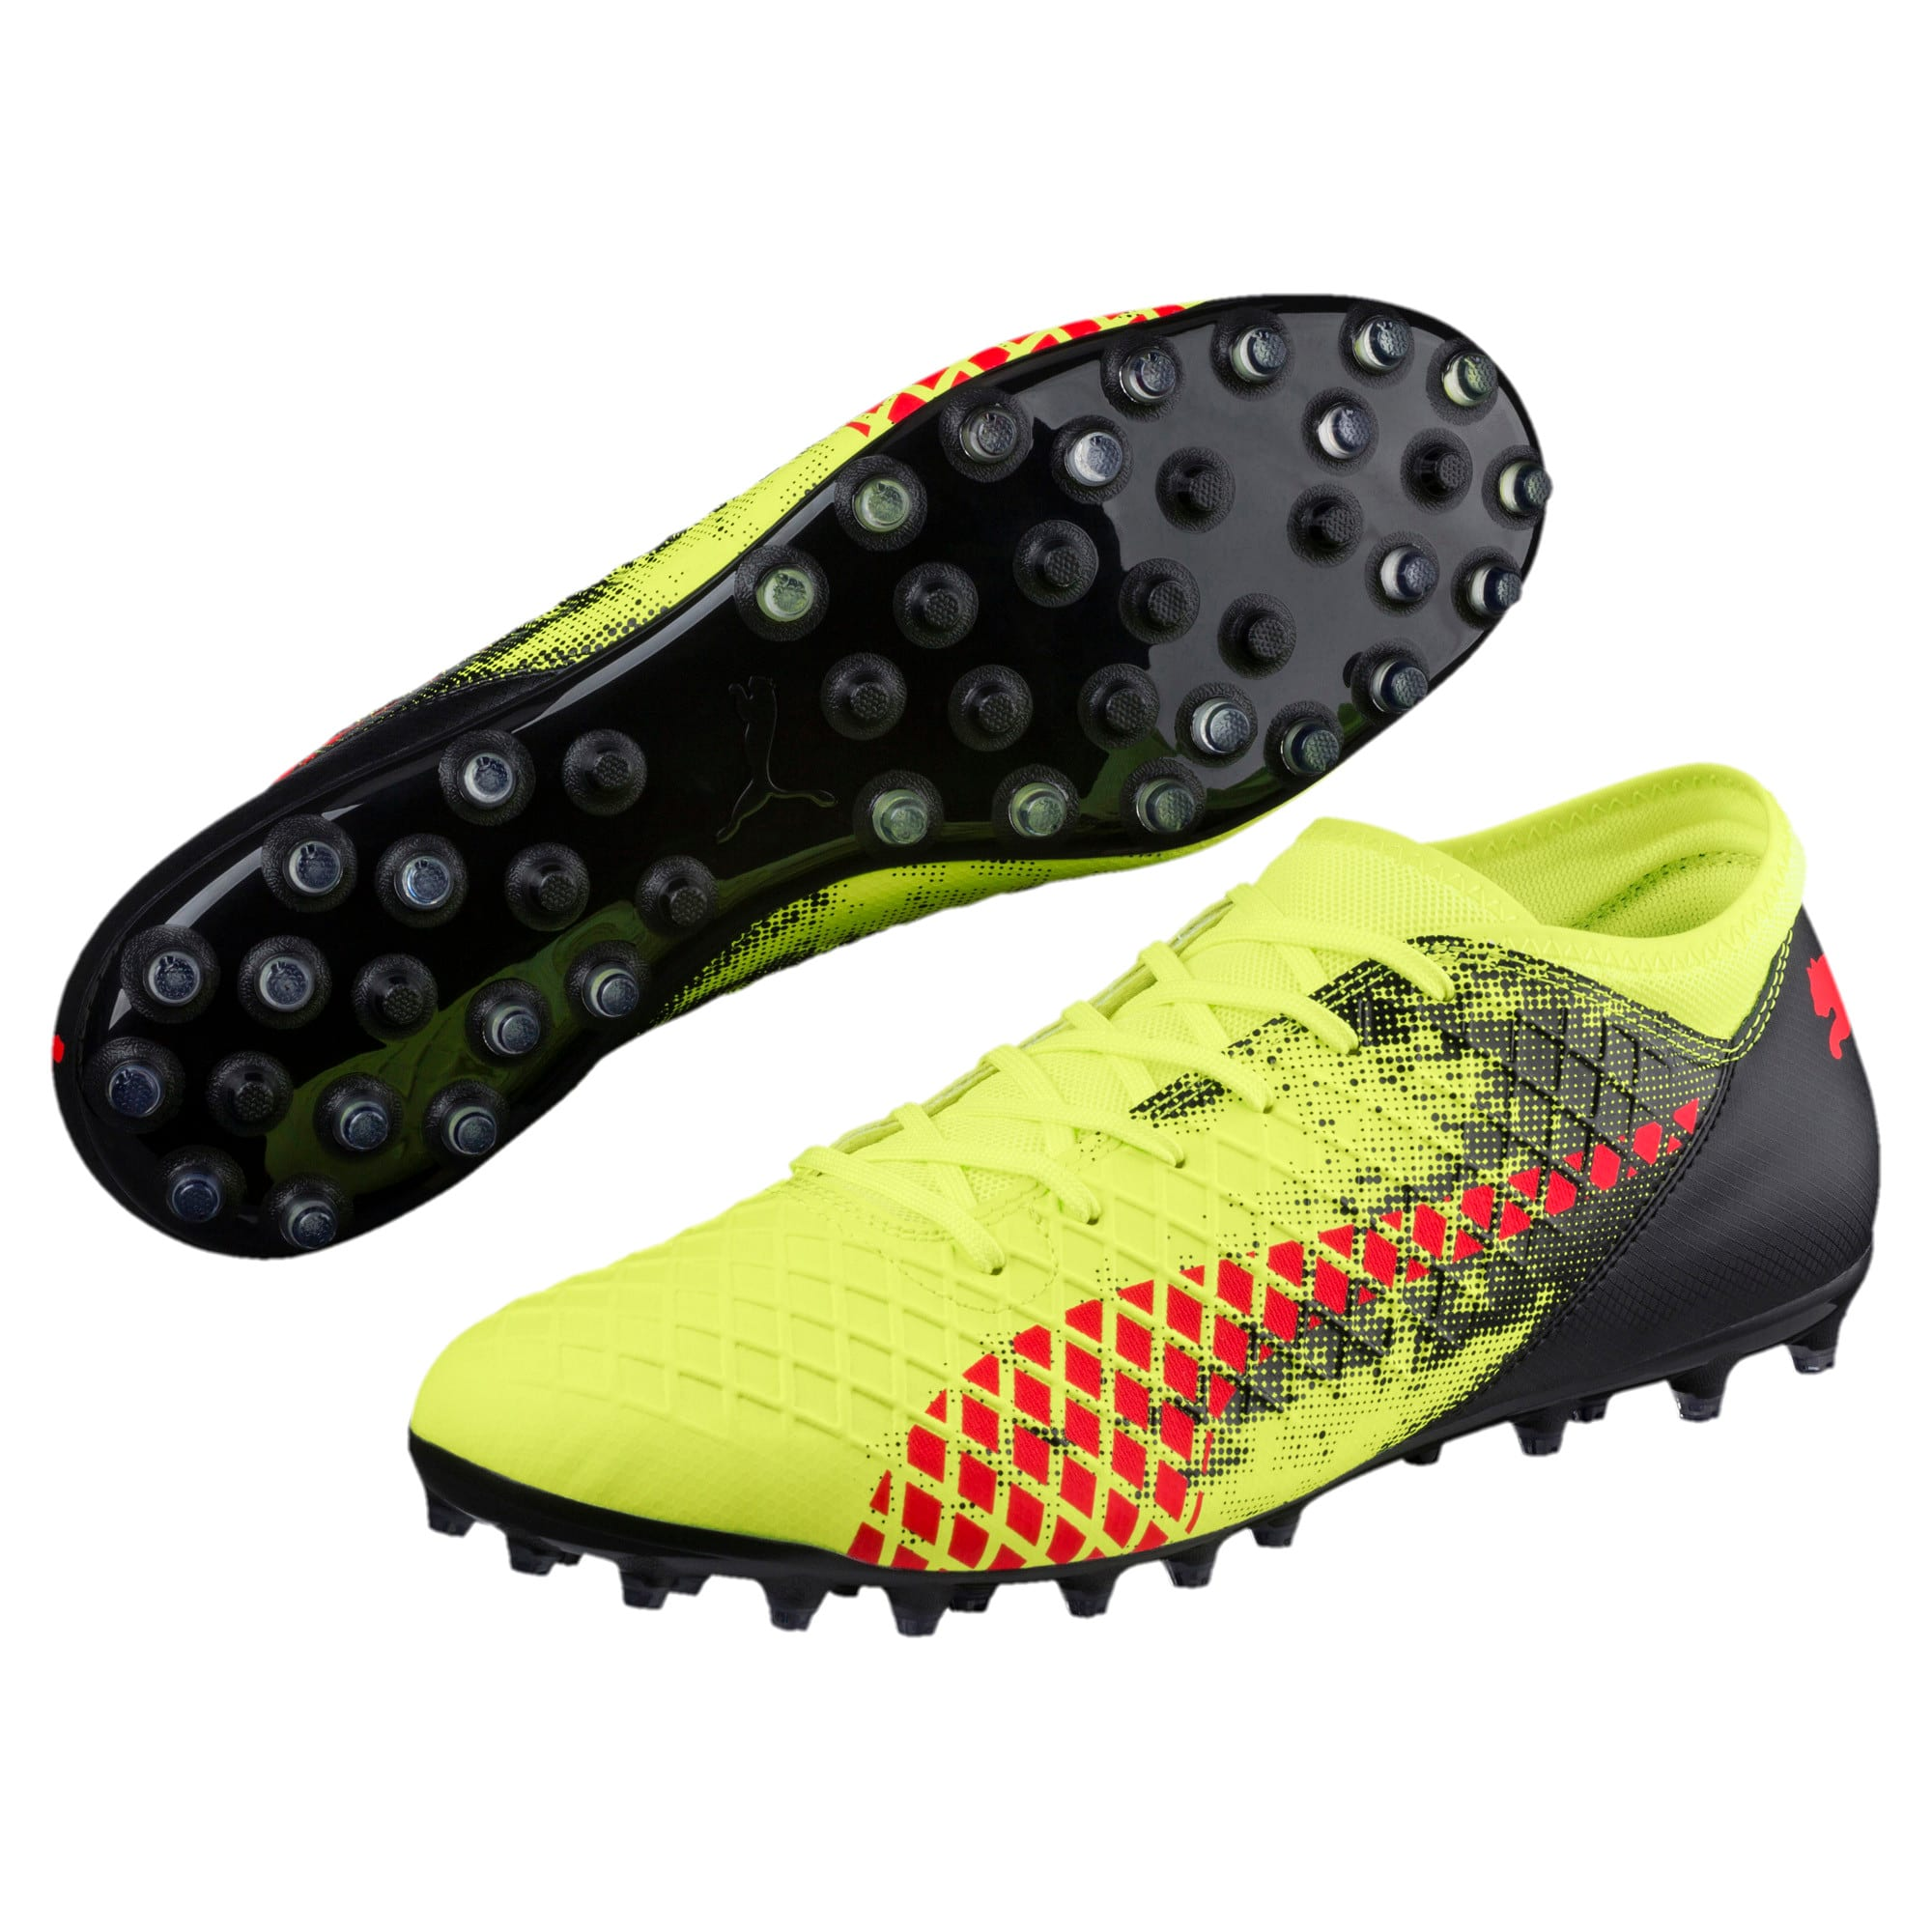 Thumbnail 2 of FUTURE 18.4 MG Men's Football Boots, Yellow-Red-Black, medium-IND